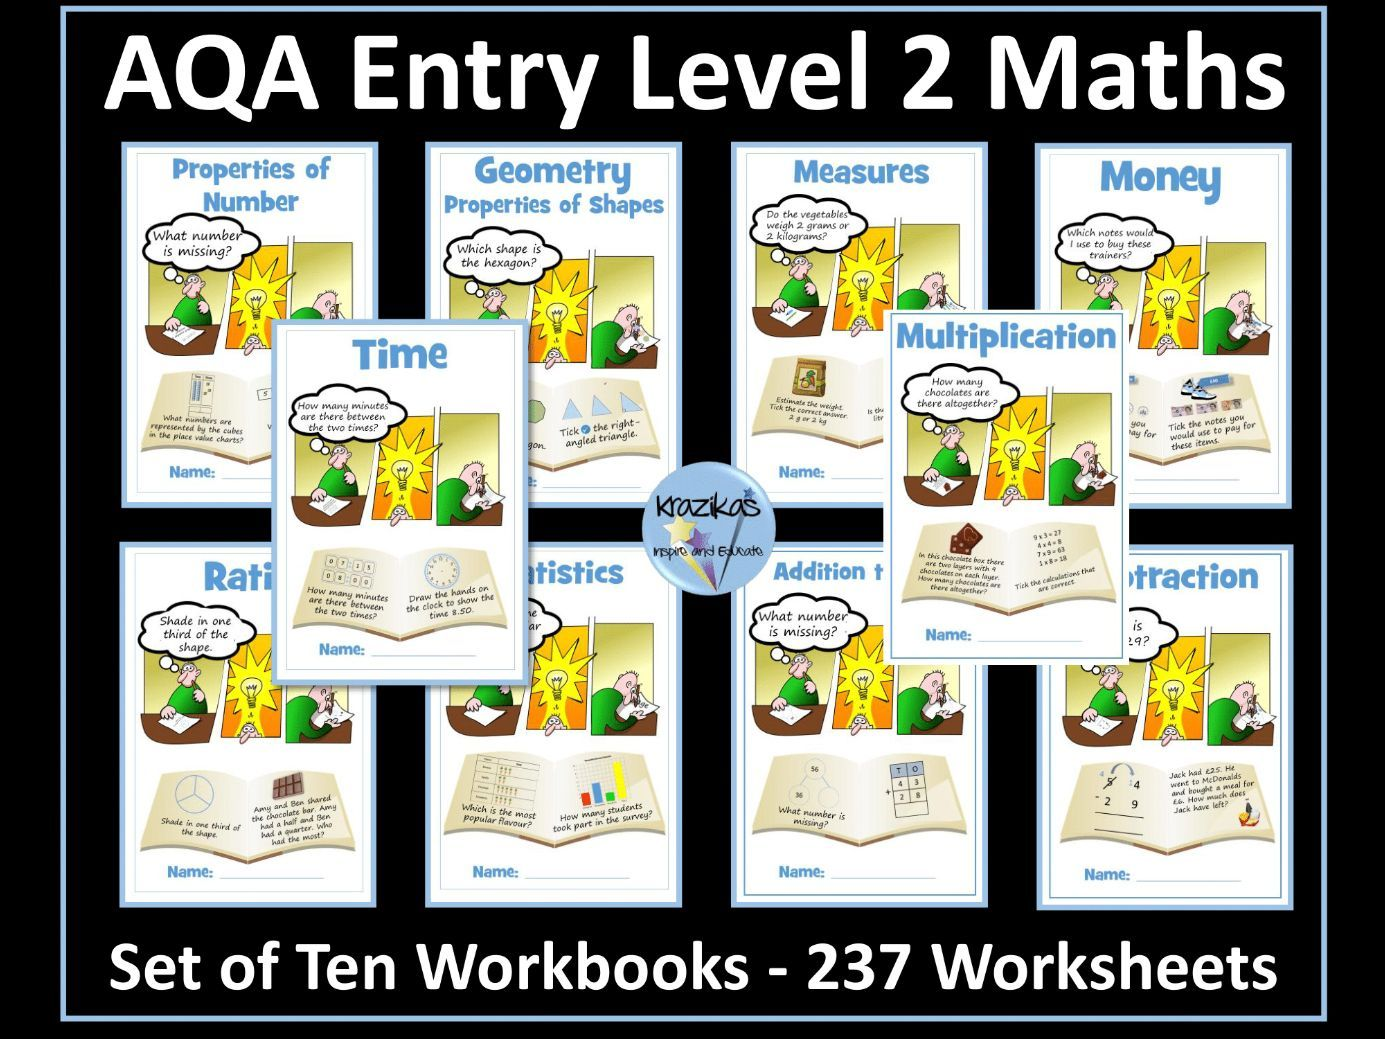 AQA Entry Level 2 Maths